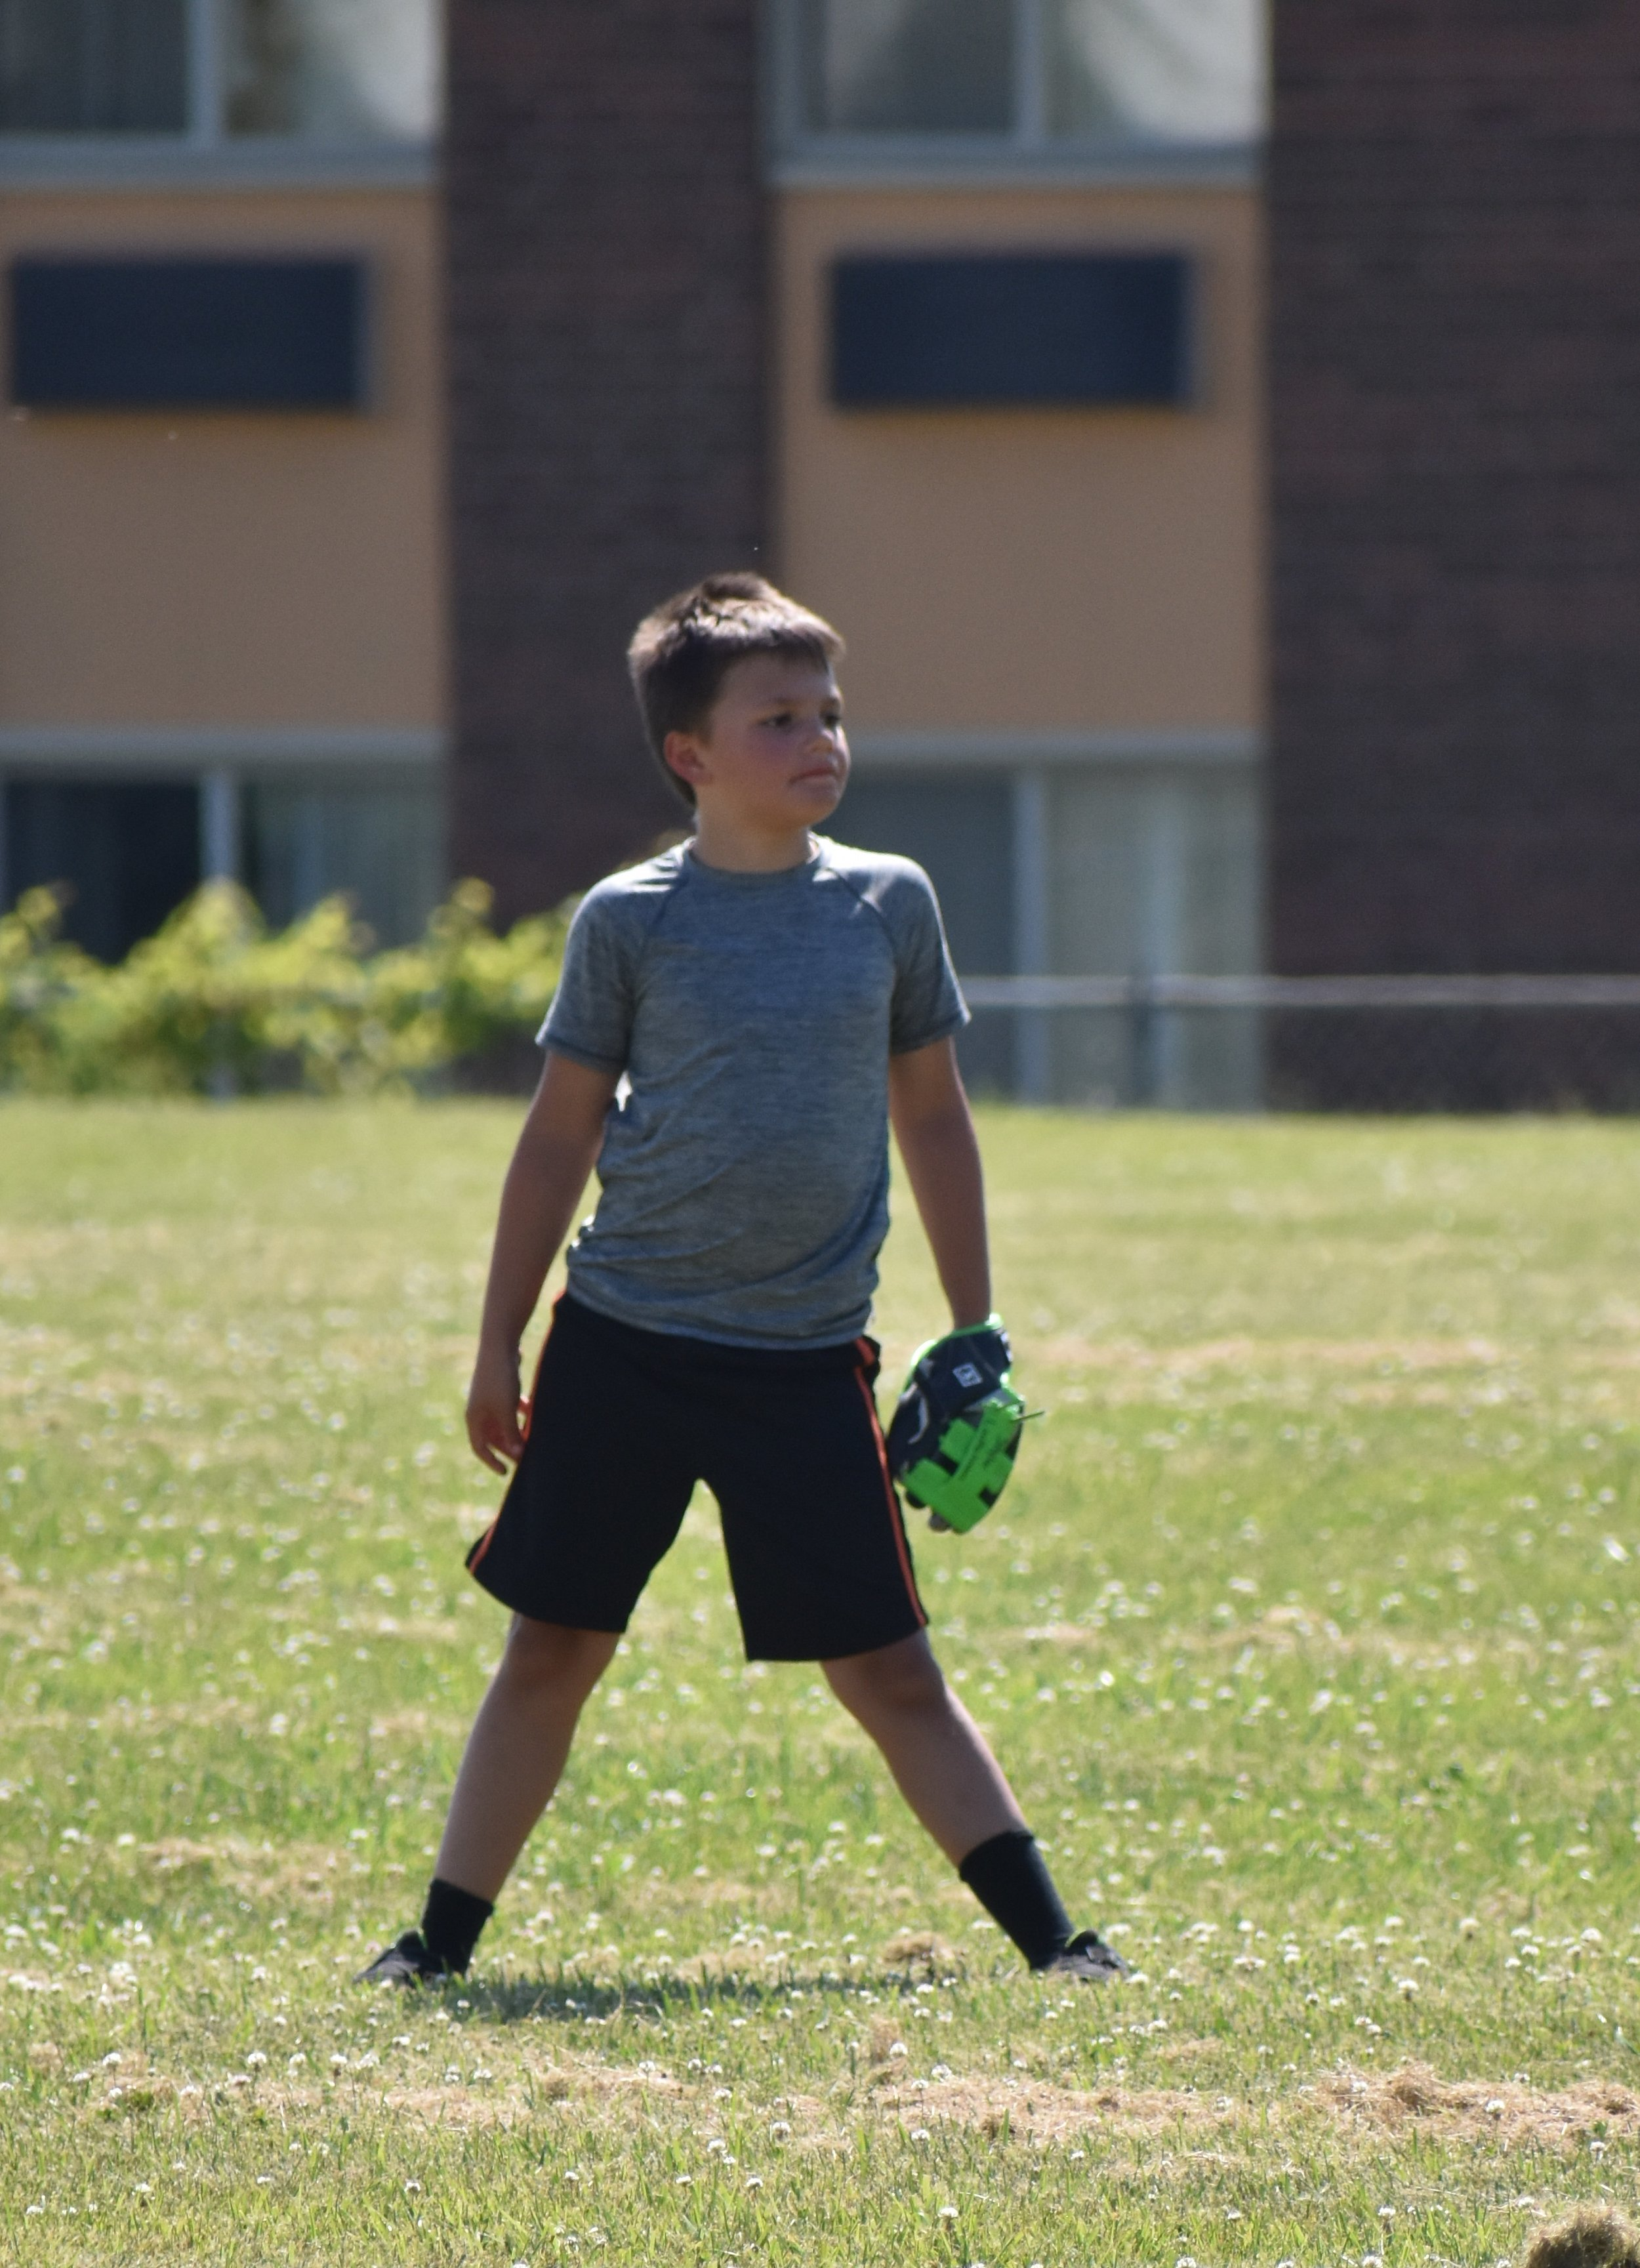 young boy standing in outfield